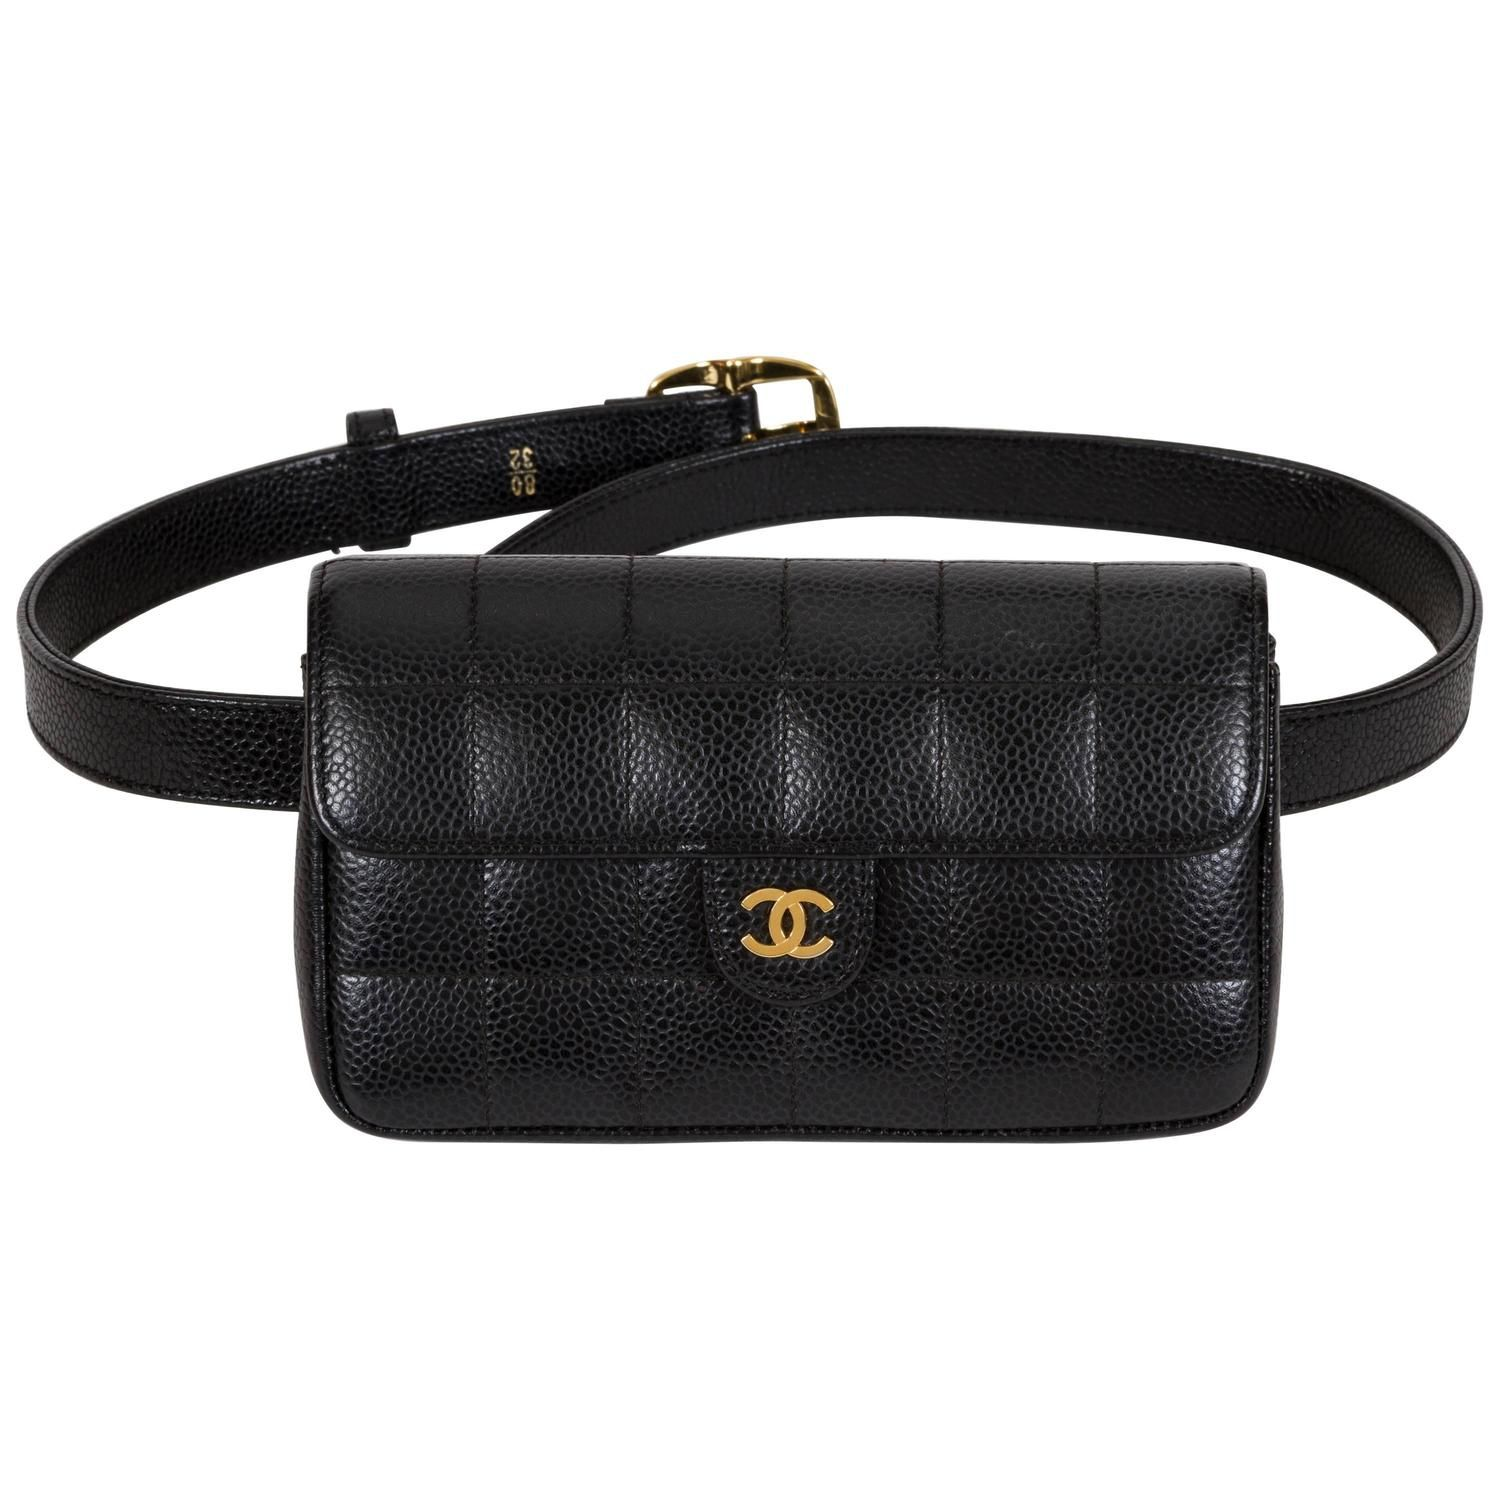 07e2b2de5 Chanel Black Caviar Quilted Fanny Belt Pack Bag Lambskin Leather, Leather  Crossbody Bag, Asia